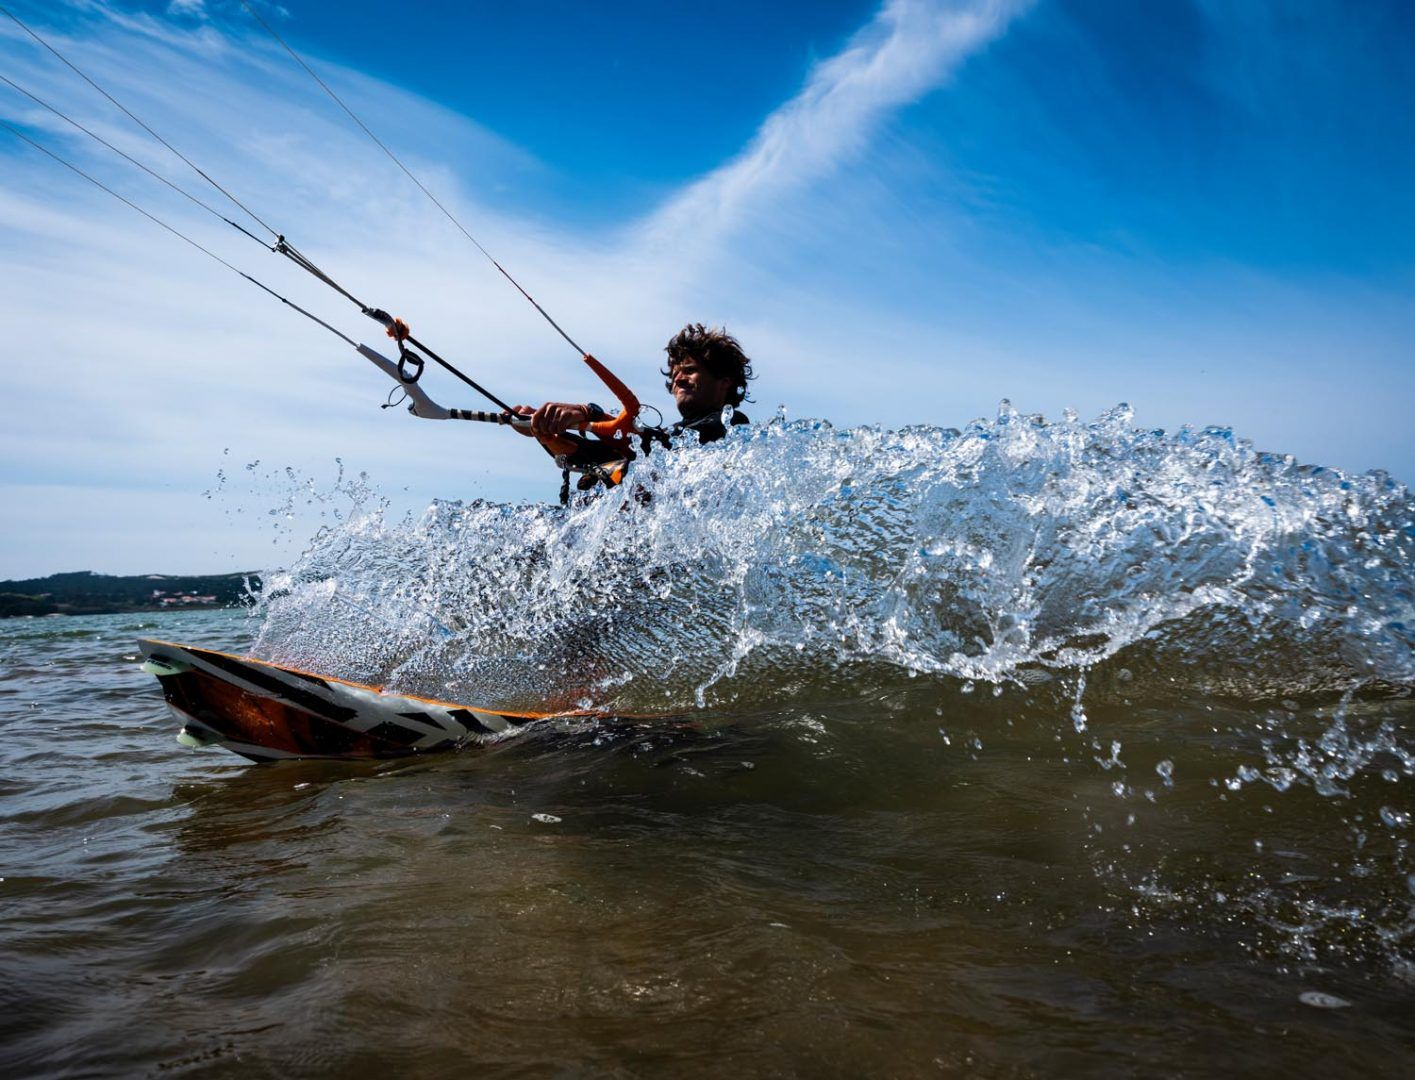 Outex Helps João Carlos create the Shot for HI FLY  #Flythechange